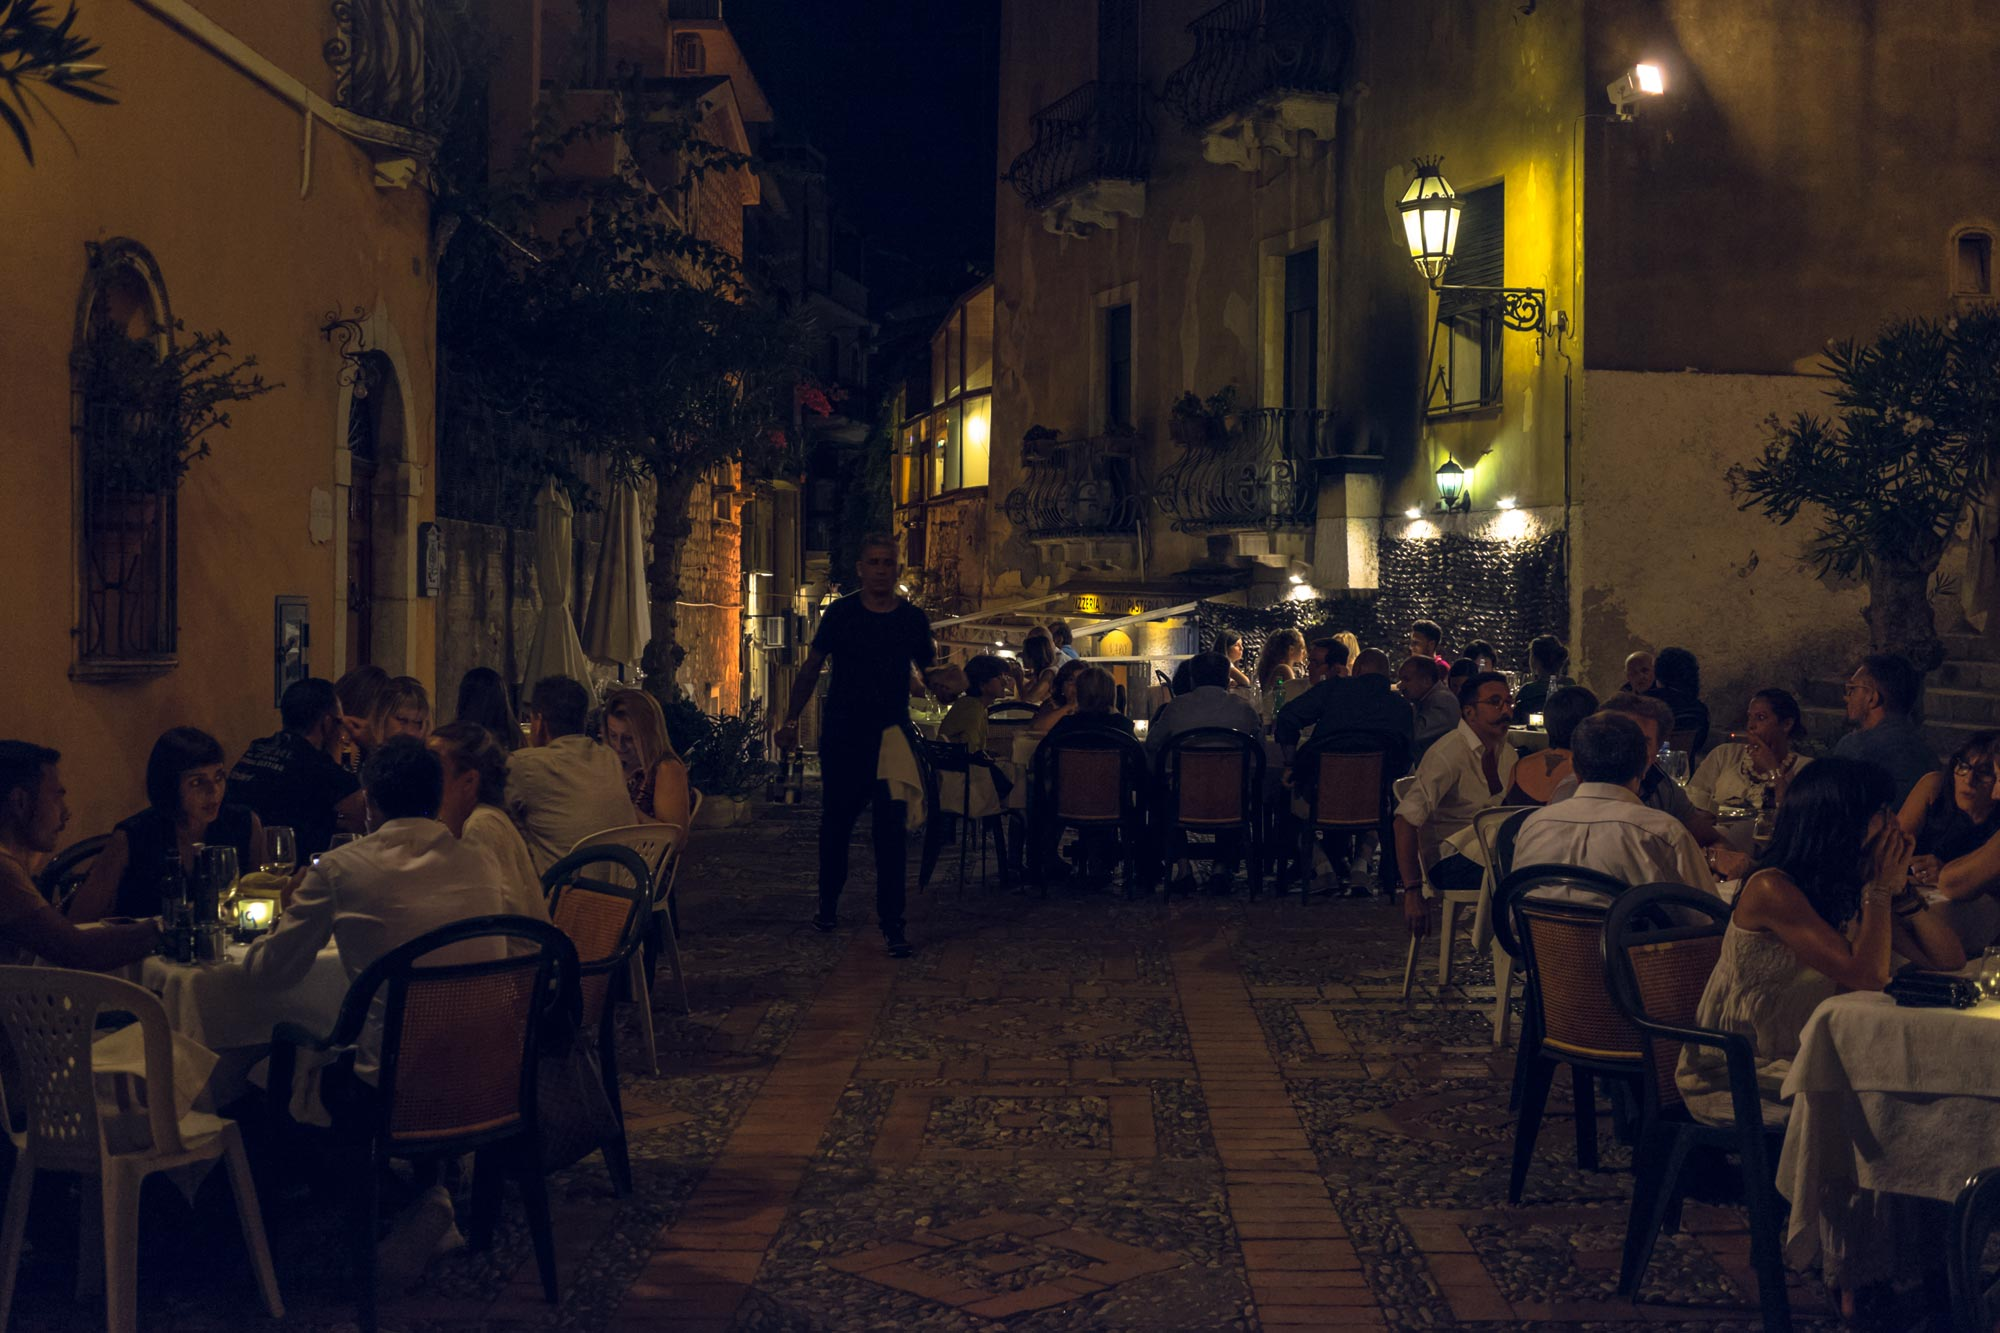 italy-sicilia-taormina-night3